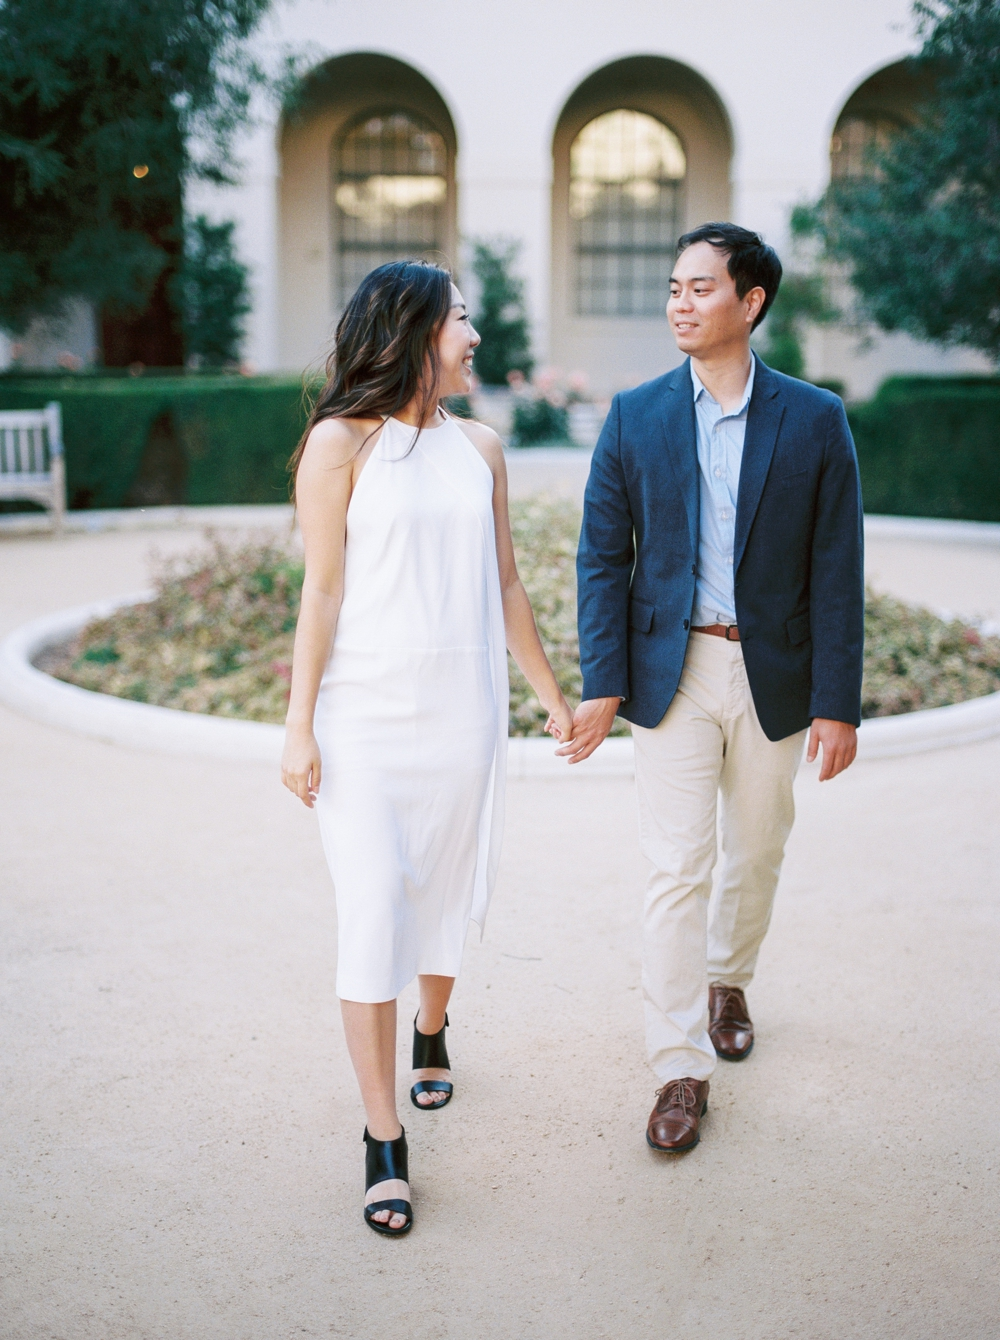 pasadena engagement photography czar goss 18.jpg